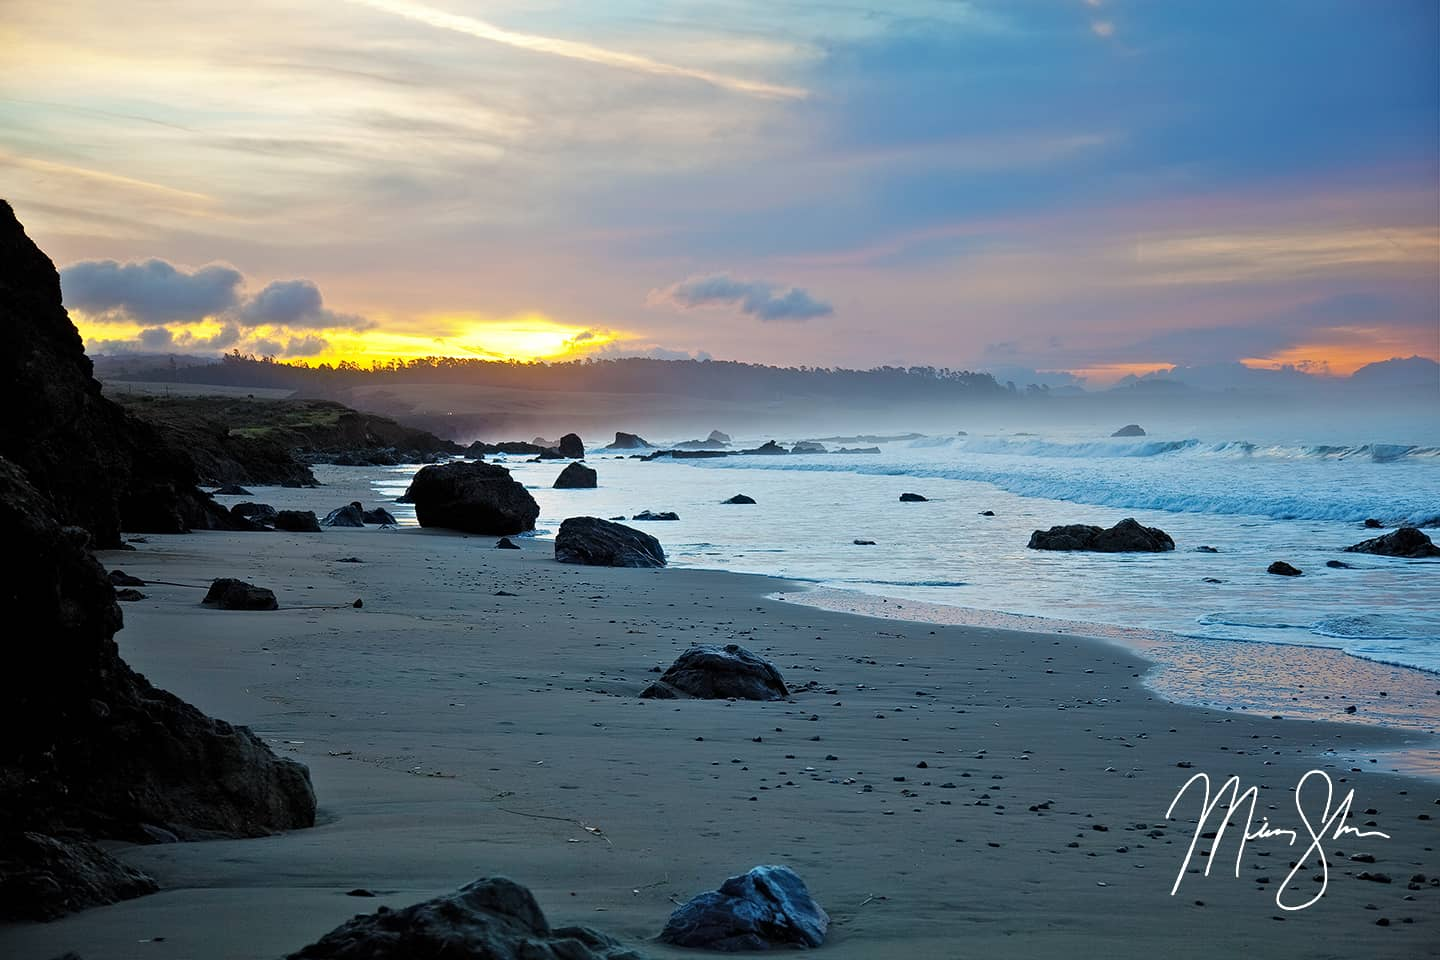 Open edition fine art print of Morning At San Simeon Bay from Mickey Shannon Photography. Location: San Simeon, California